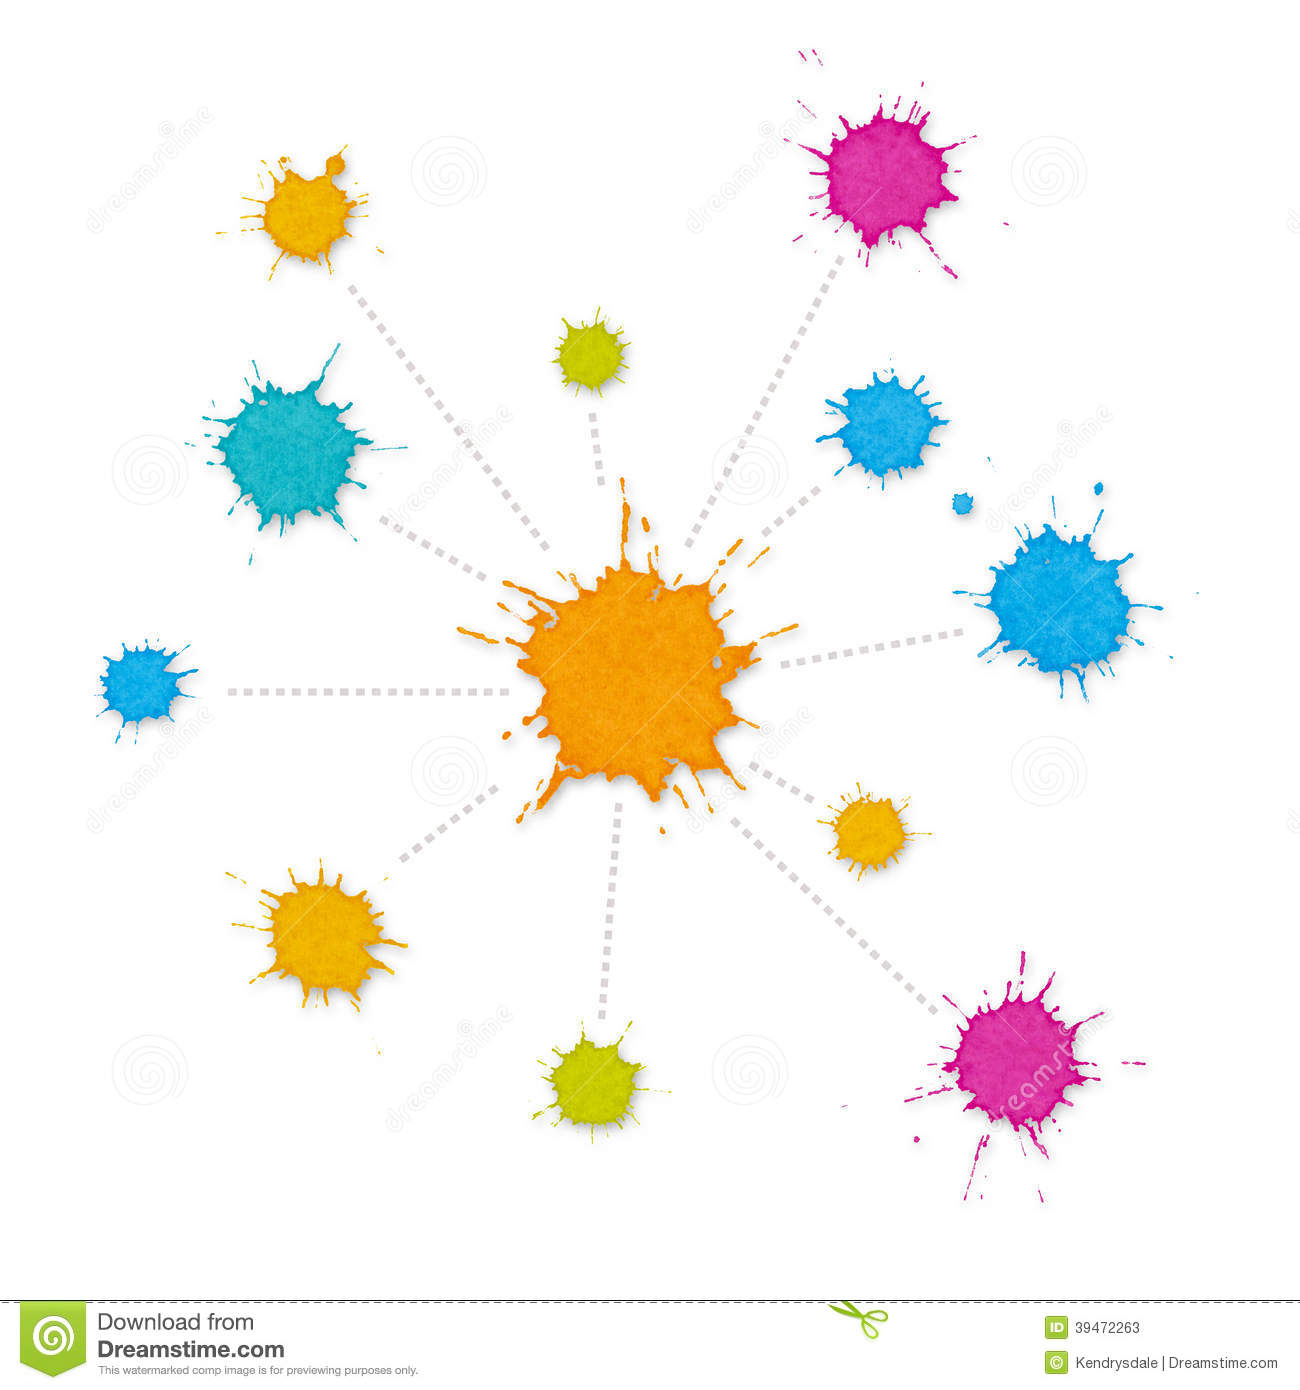 Infographic Interconnected Network Of Paint Splashes Stock.